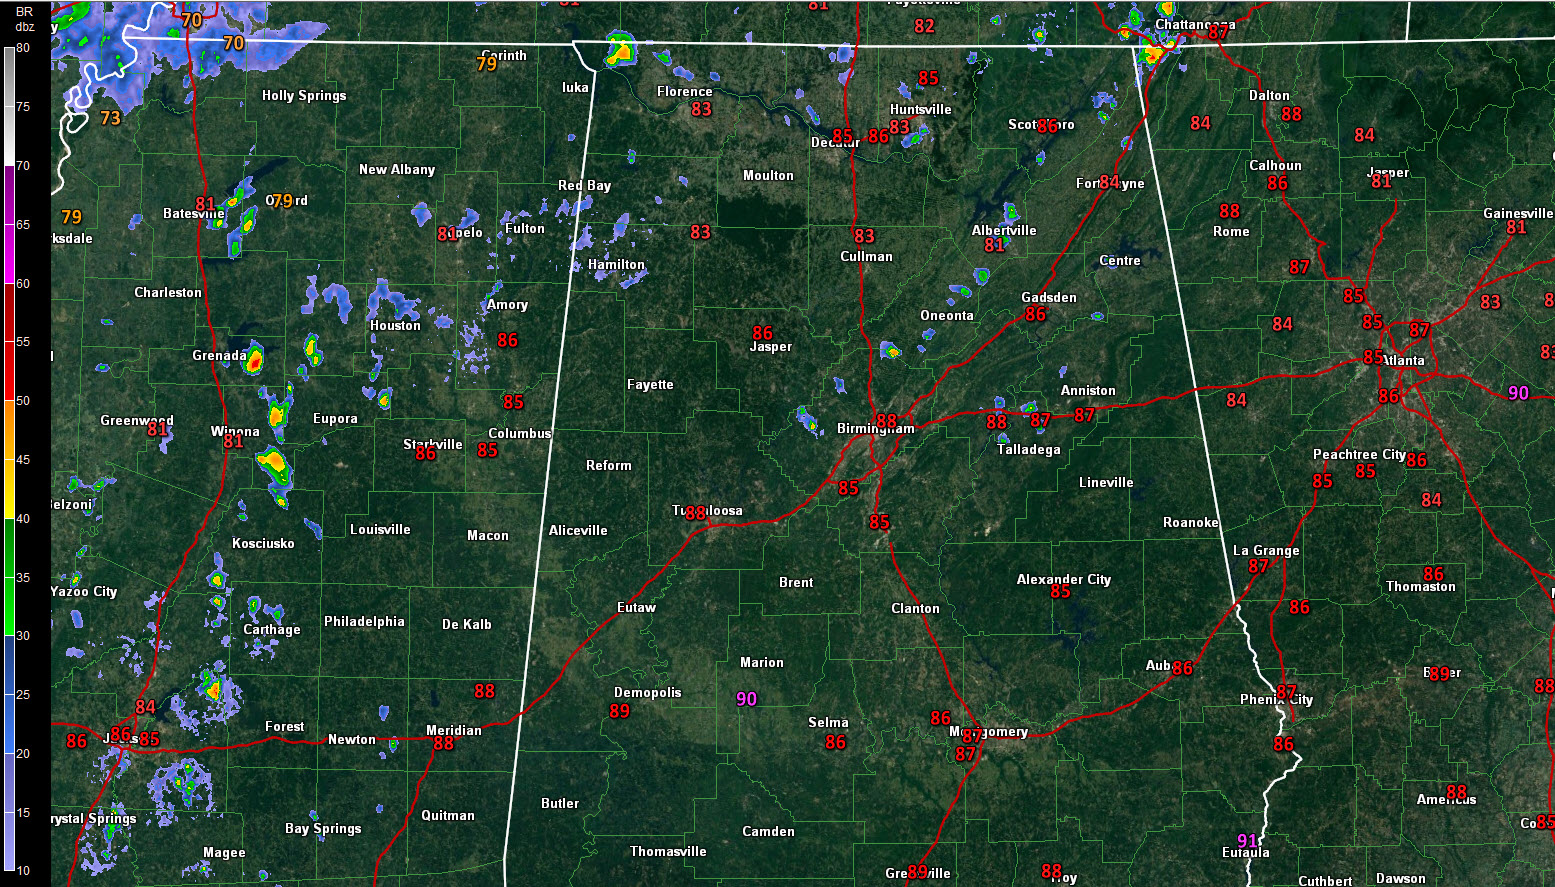 An Alabama Weather Update at 12:45 p m : A Few Showers